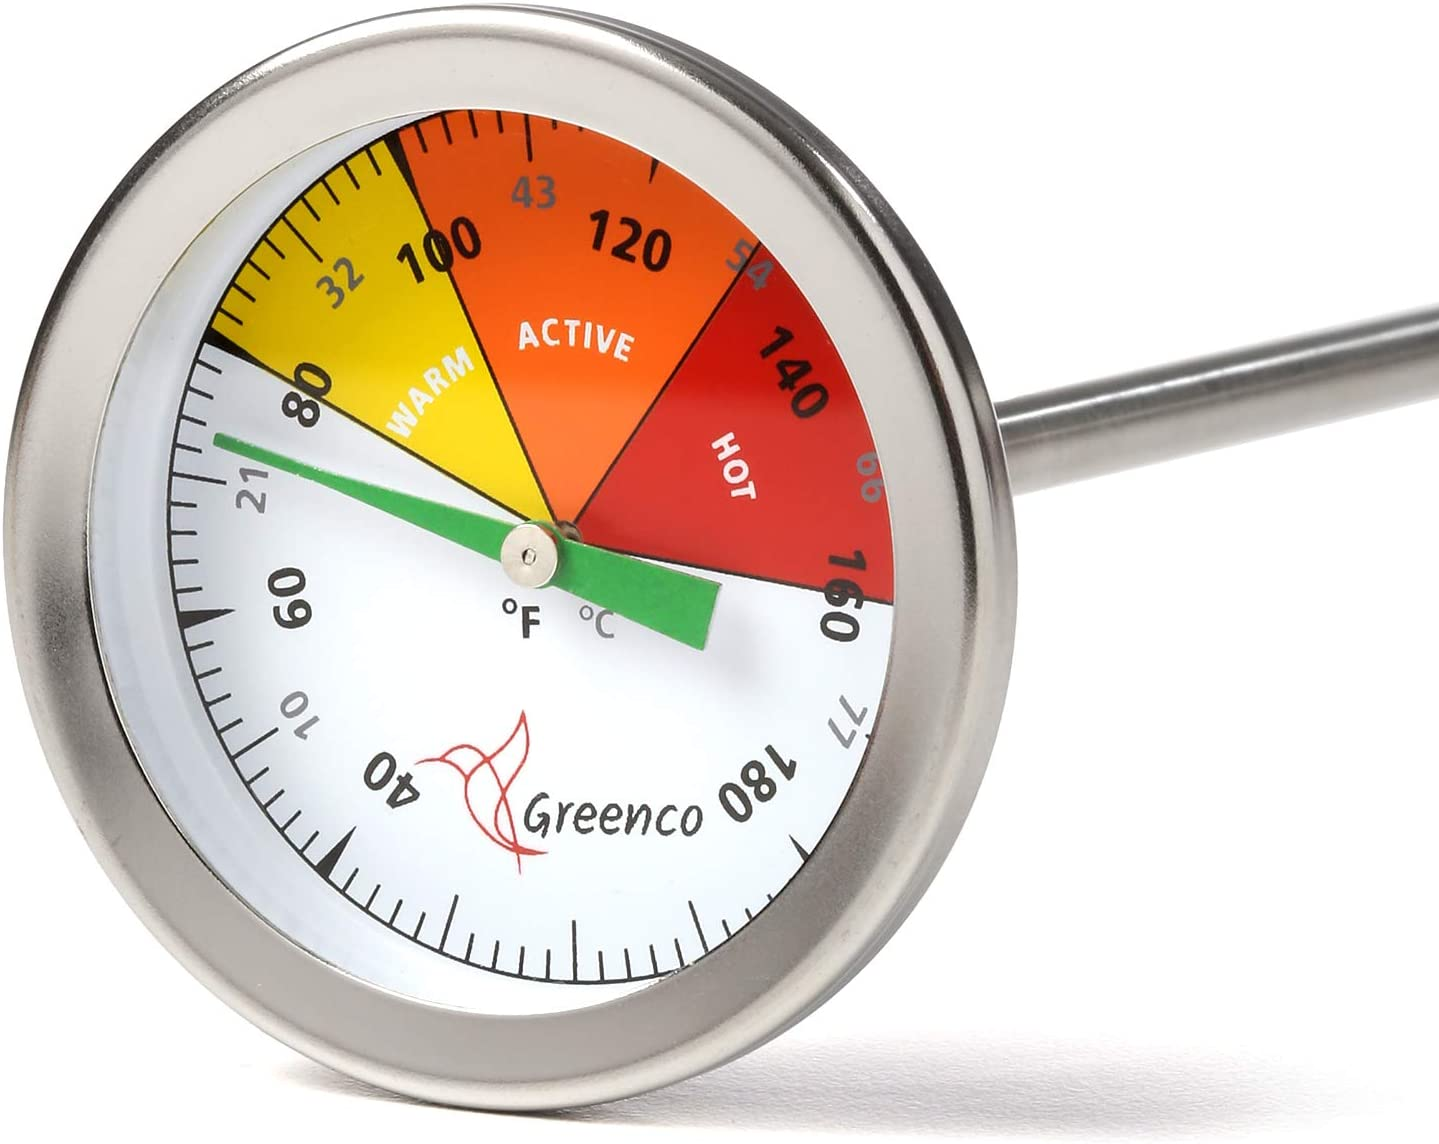 Compost Soil Thermometer by Greenco